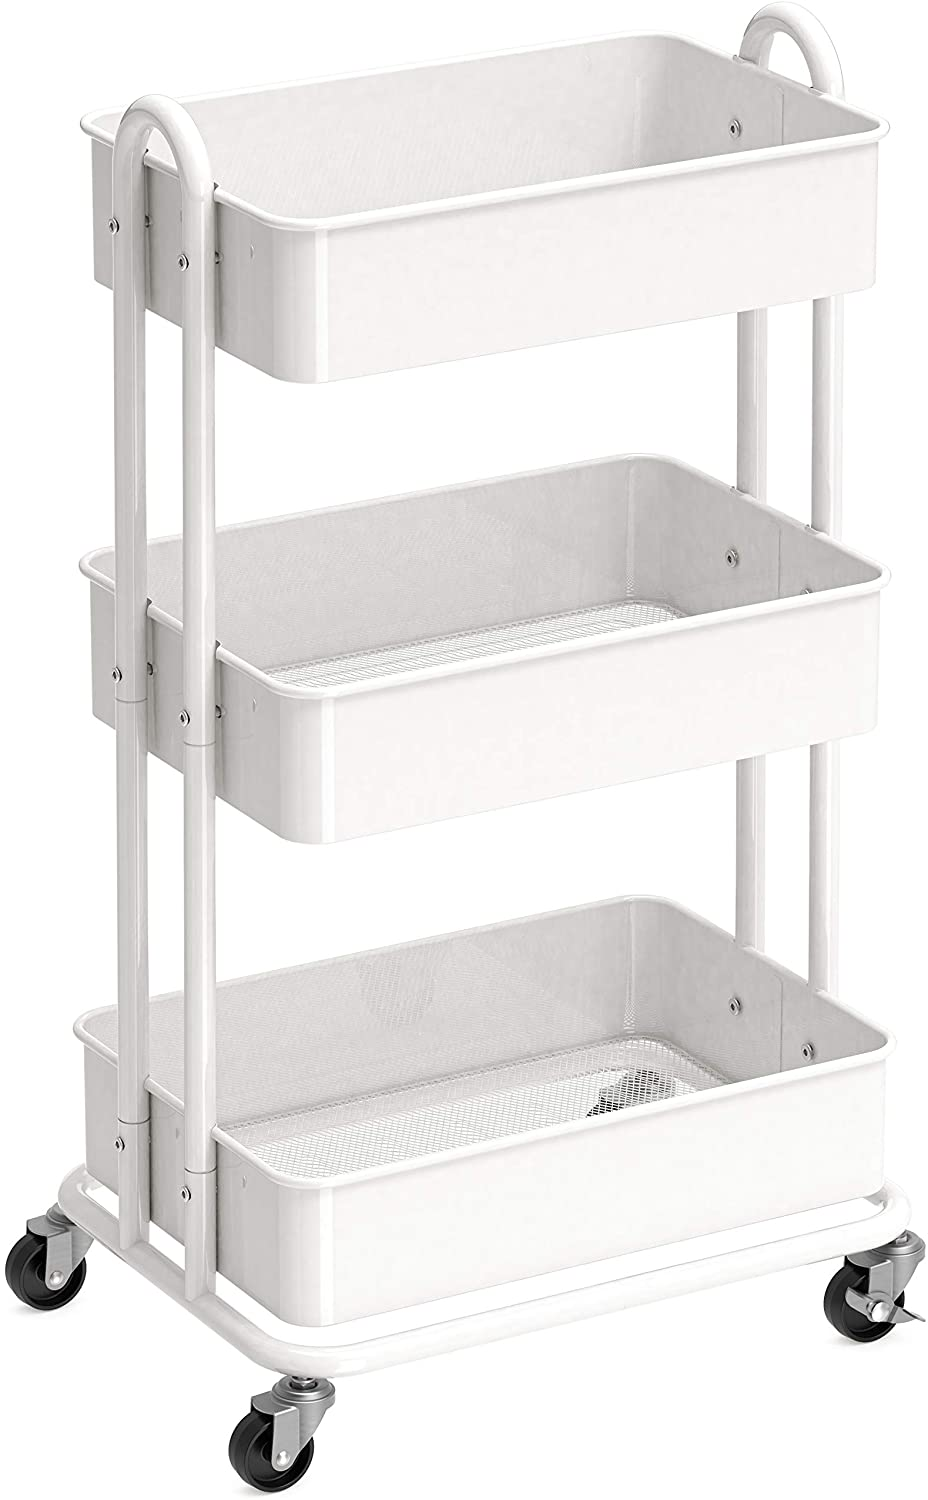 SimpleHouseware Heavy Duty 3-Tier Metal Utility Rolling Cart, White